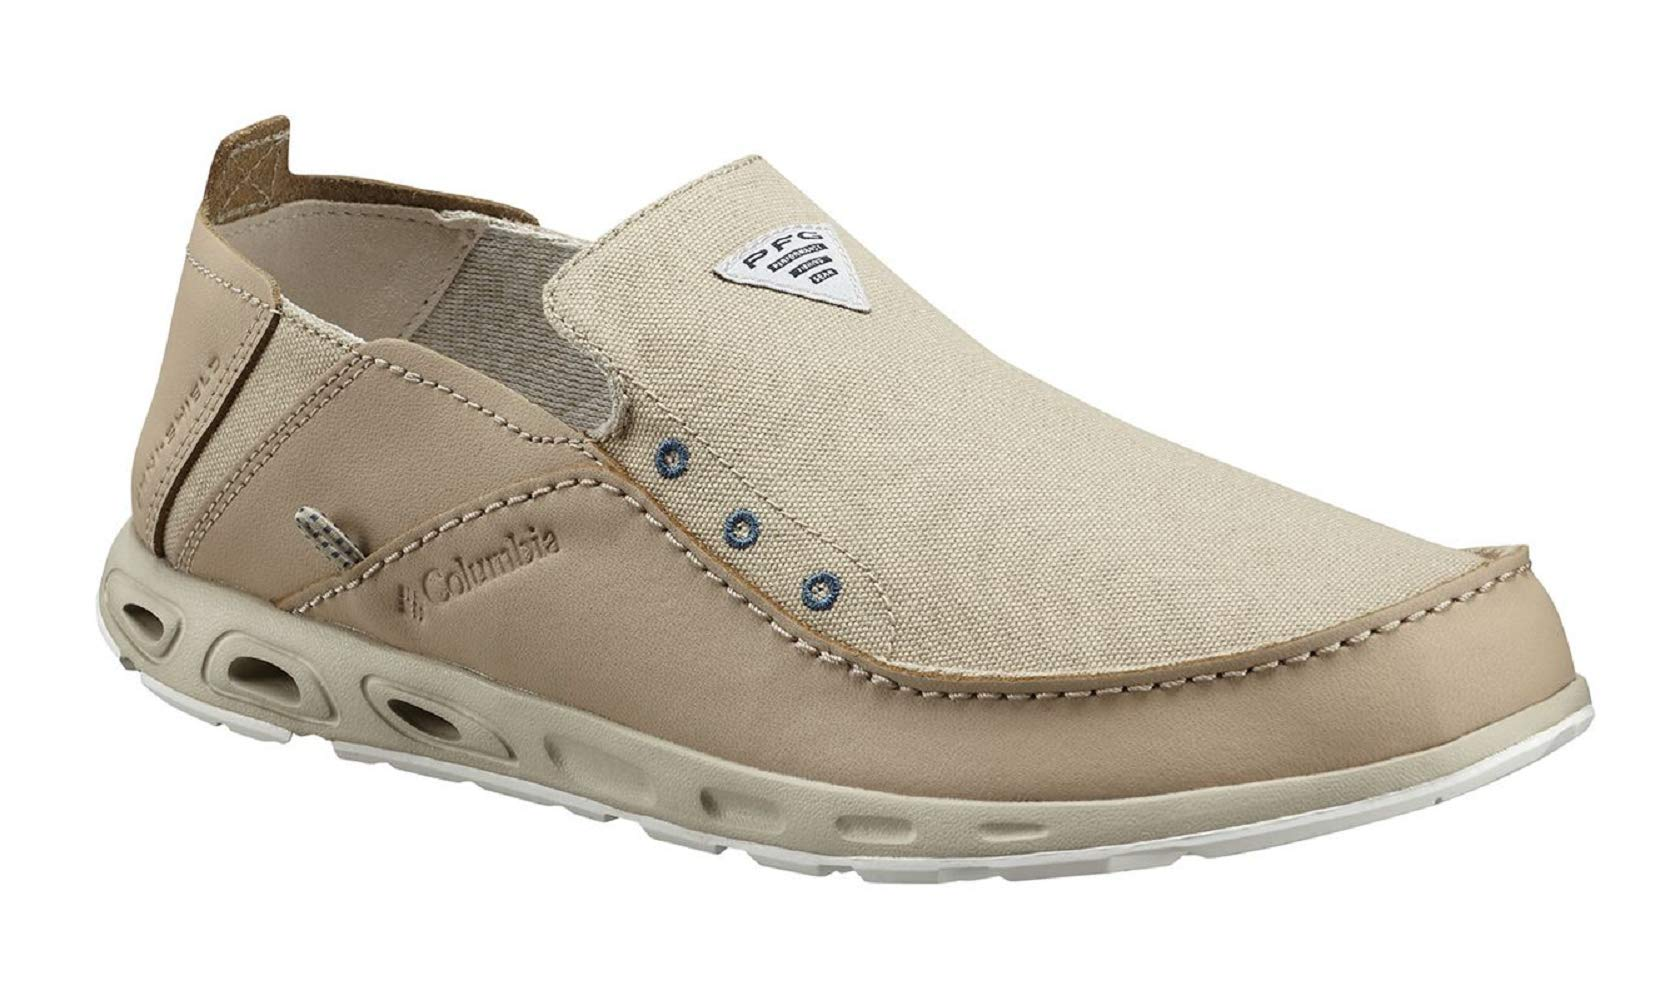 Columbia Men's, Bahama Vent PFG Slip-On - Wide Width Fossil 14 M Tan by Columbia